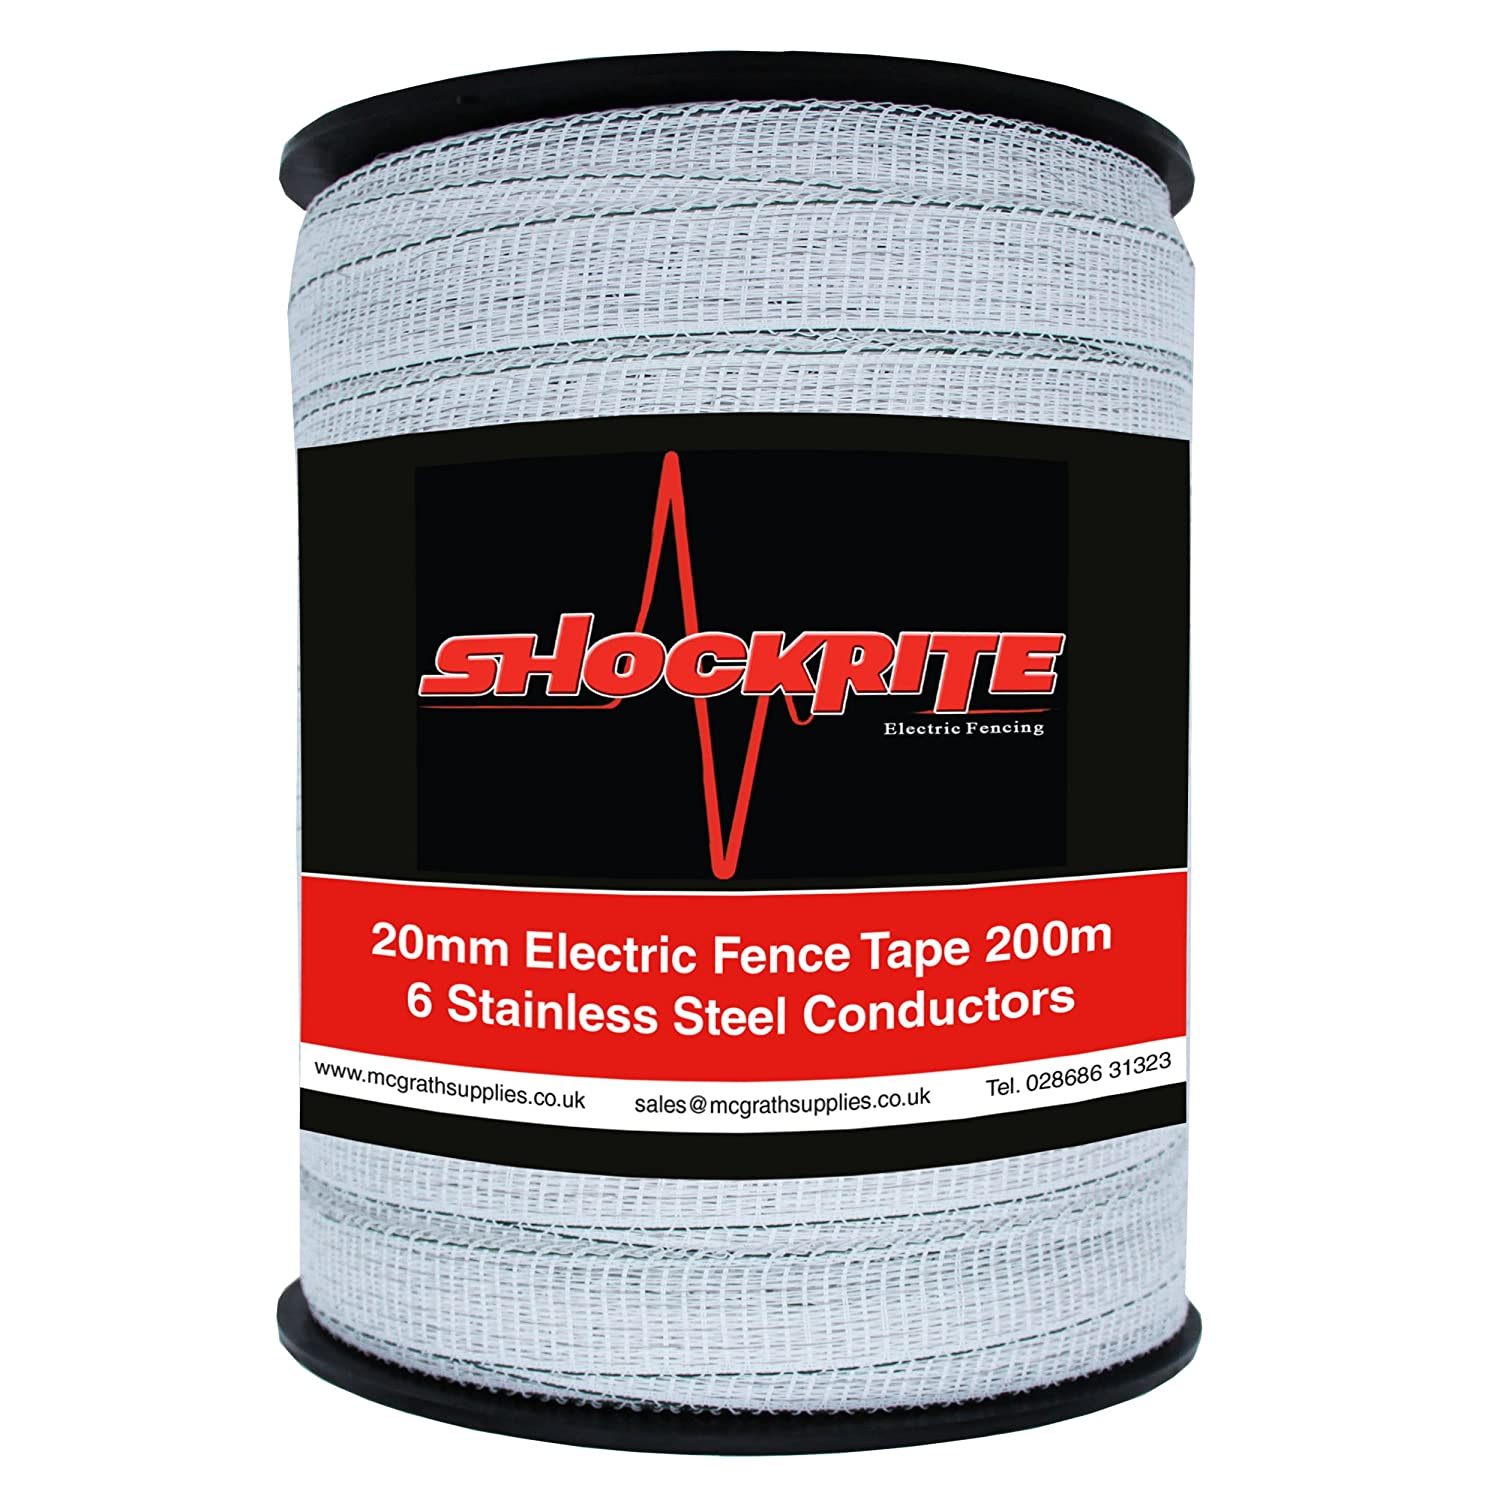 200m x 20mm Electric Fence Fencer Fencing Poly Tape 6 SS Conductors Polytape